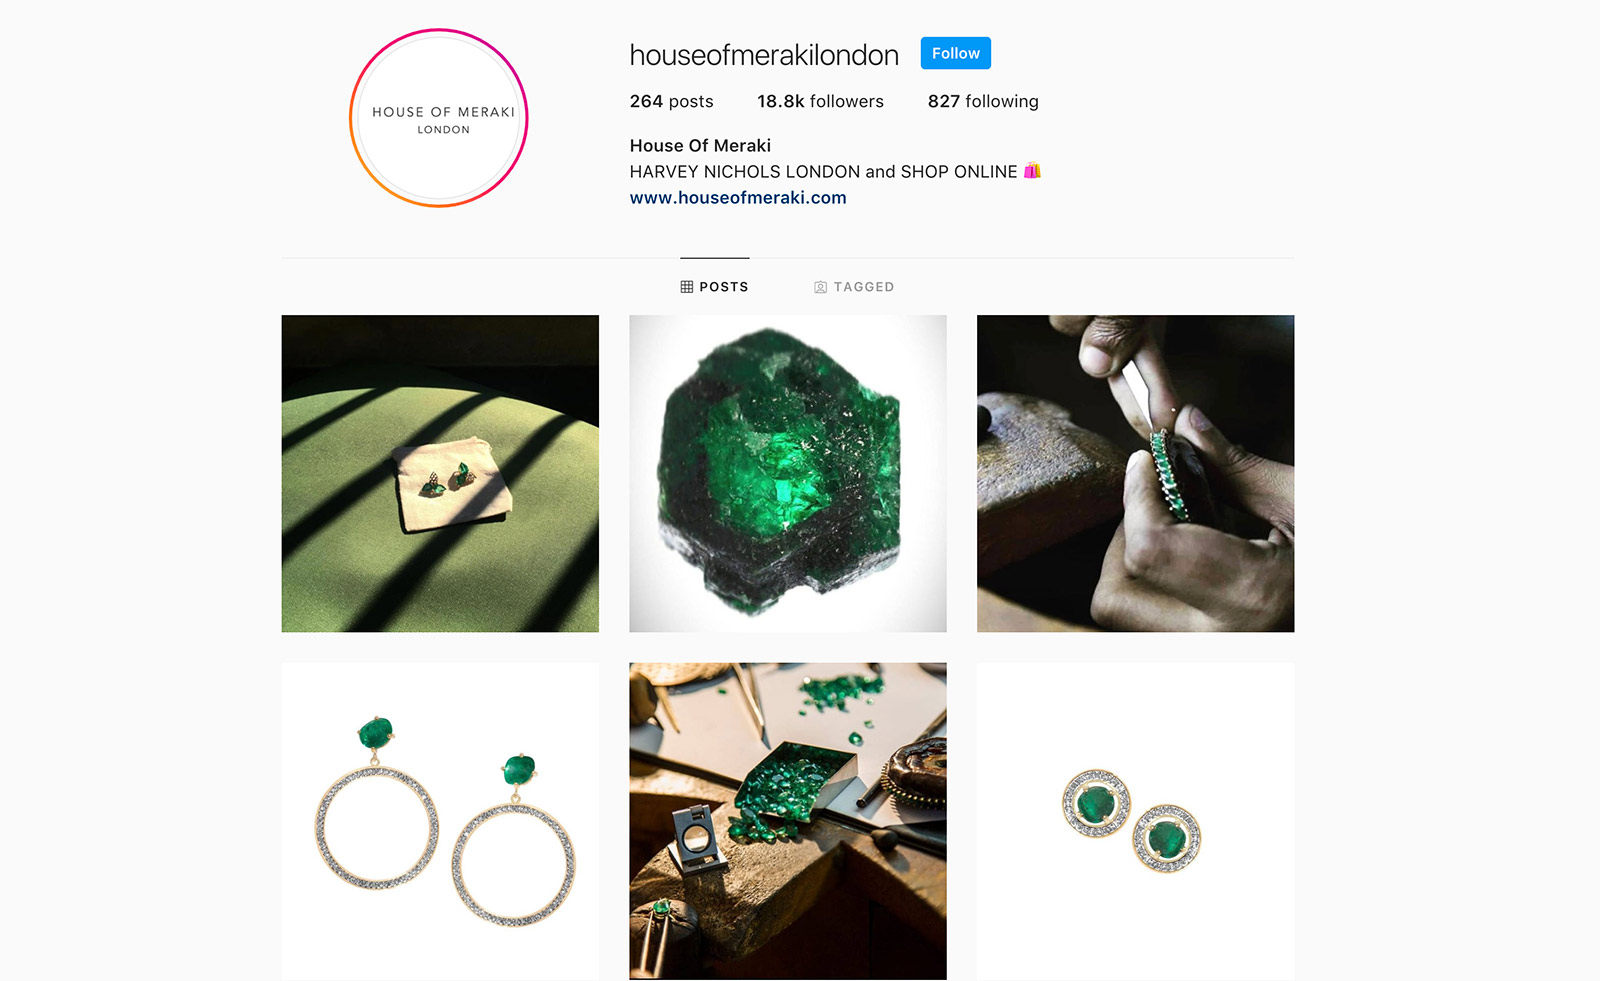 Аккаунт House of Meraki в Instagram